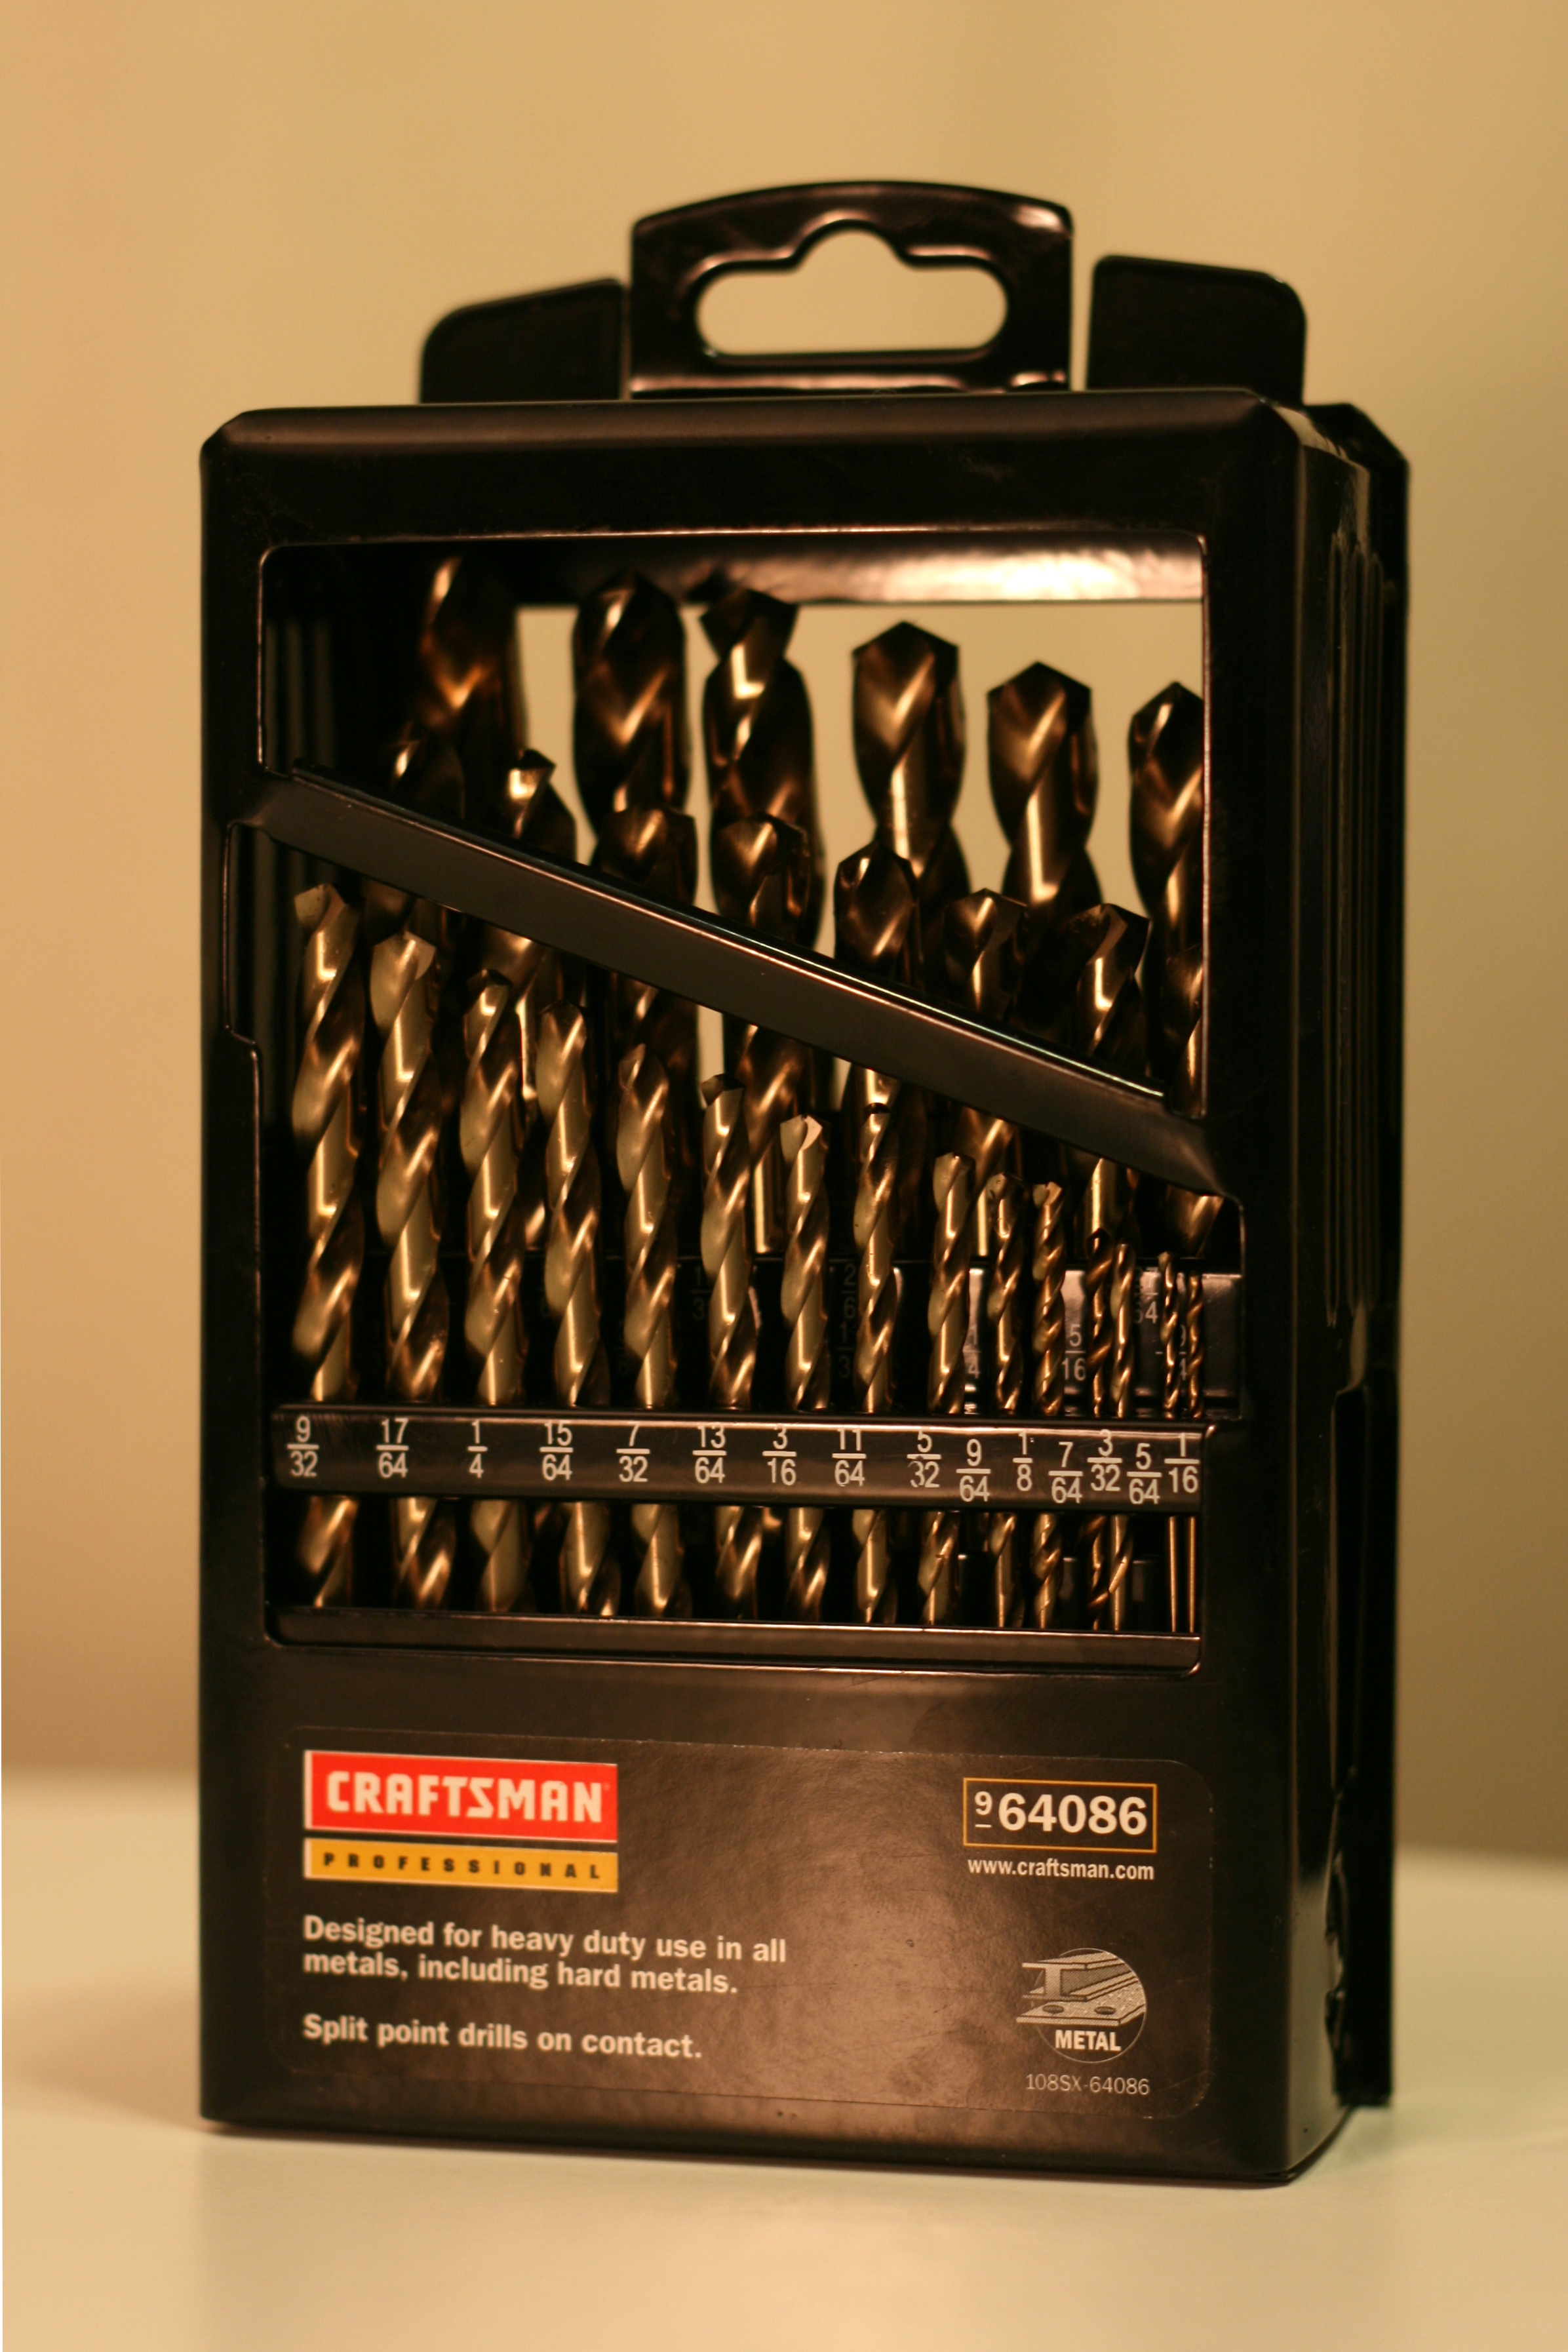 File2010 01 21 craftsman professional cobalt drill bit setg file2010 01 21 craftsman professional cobalt drill bit setg greentooth Gallery